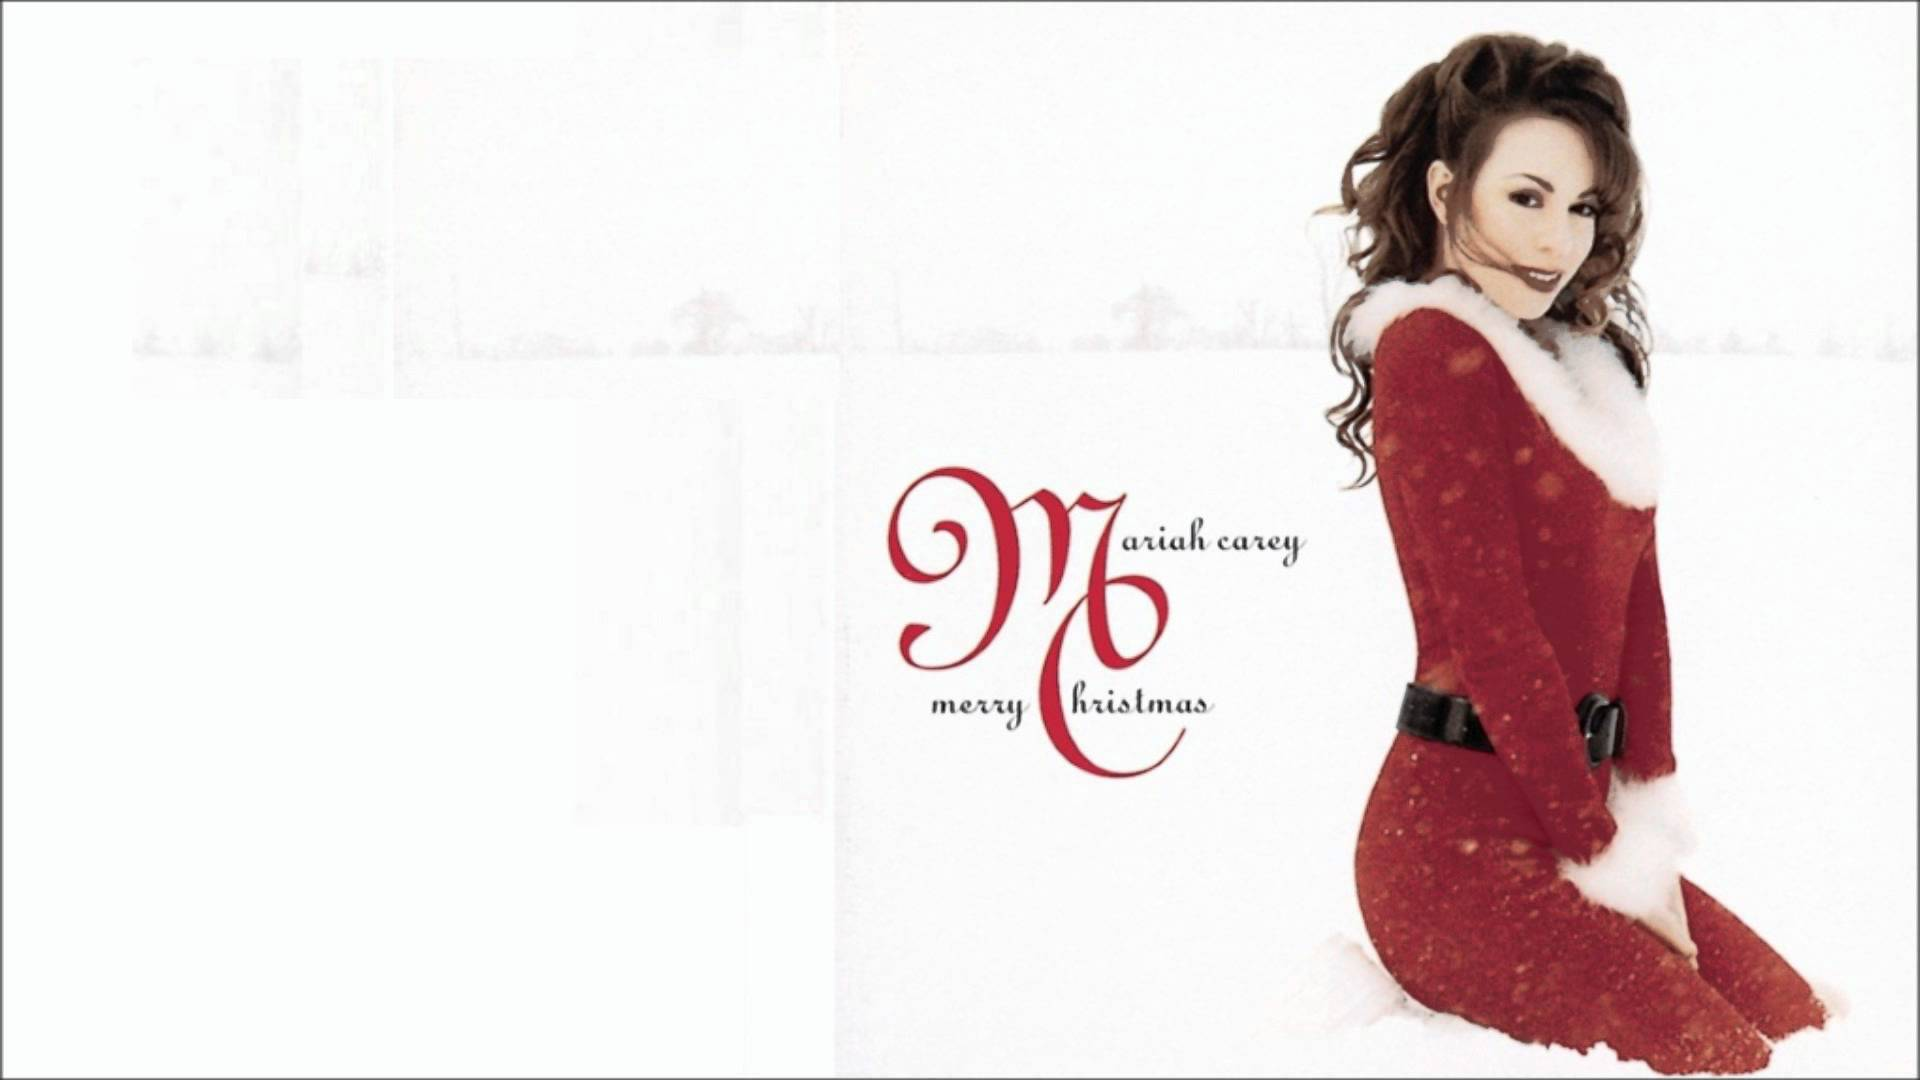 top 10 youtube covers of all i want for christmas is you long island pulse magazine - All I Want For Christmas Is You Youtube